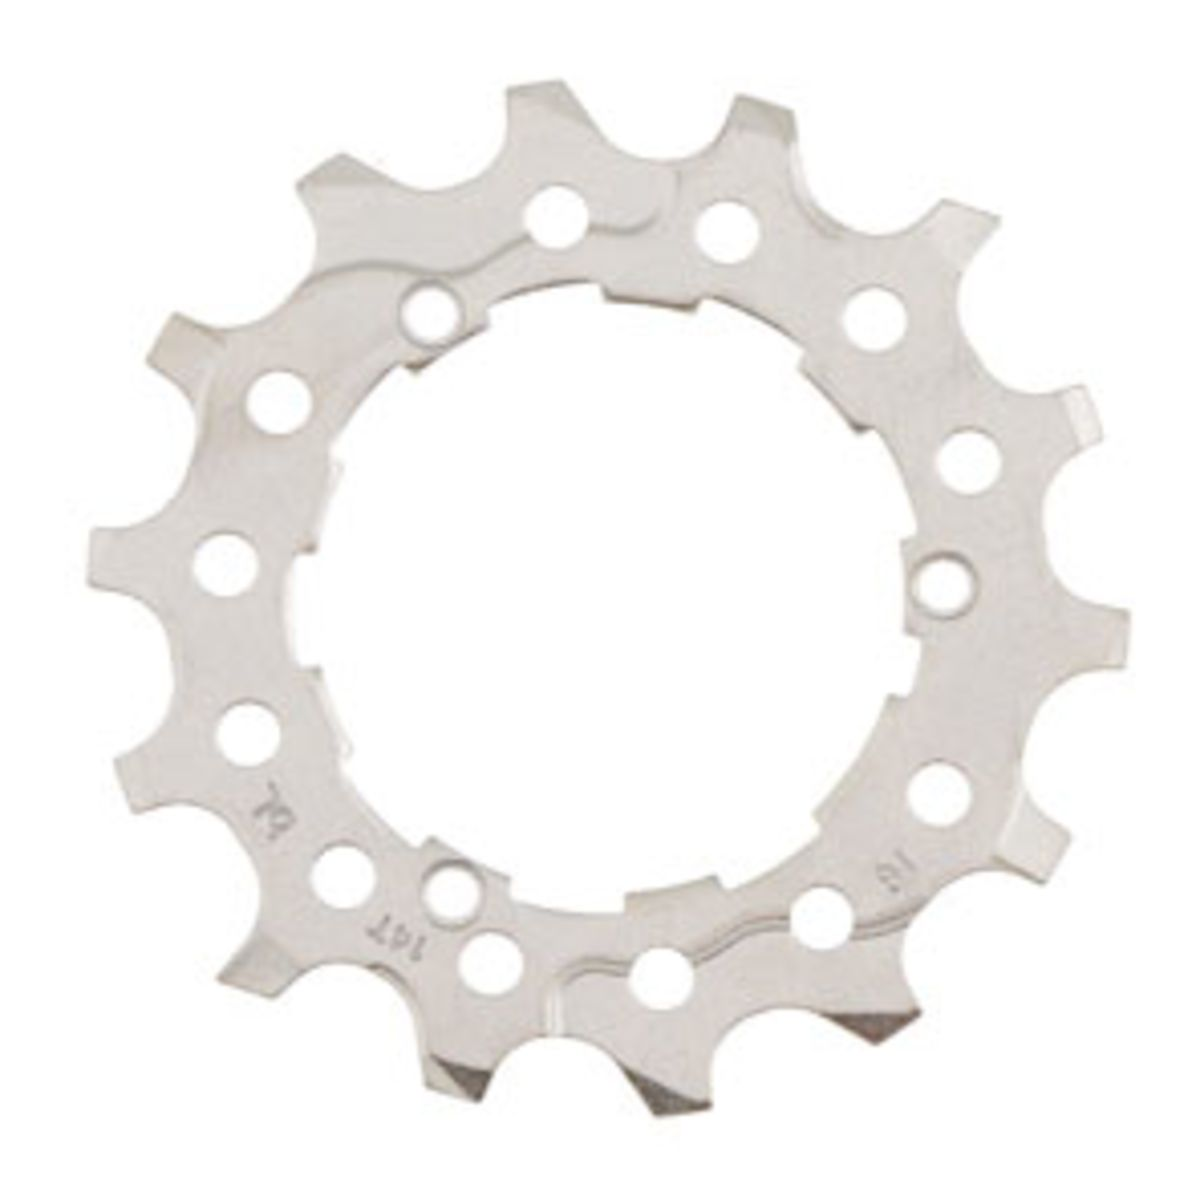 XT CS-M771 10-speed, 14-tooth replacement sprocket